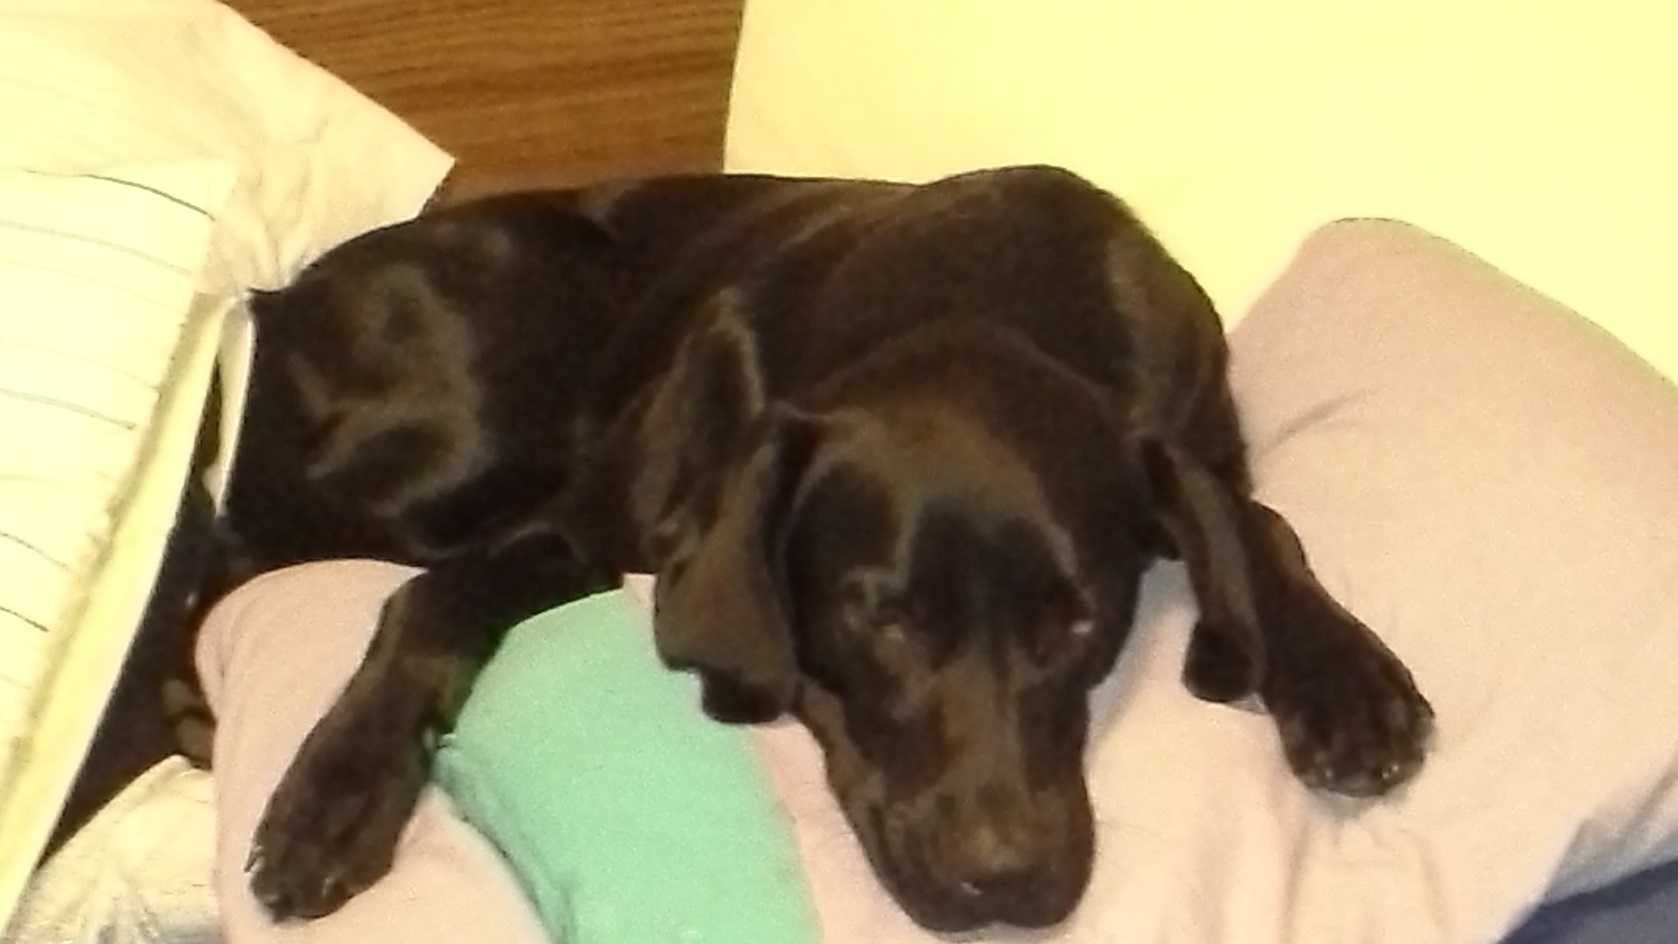 Family searches for lost dog after Thanksgiving crash